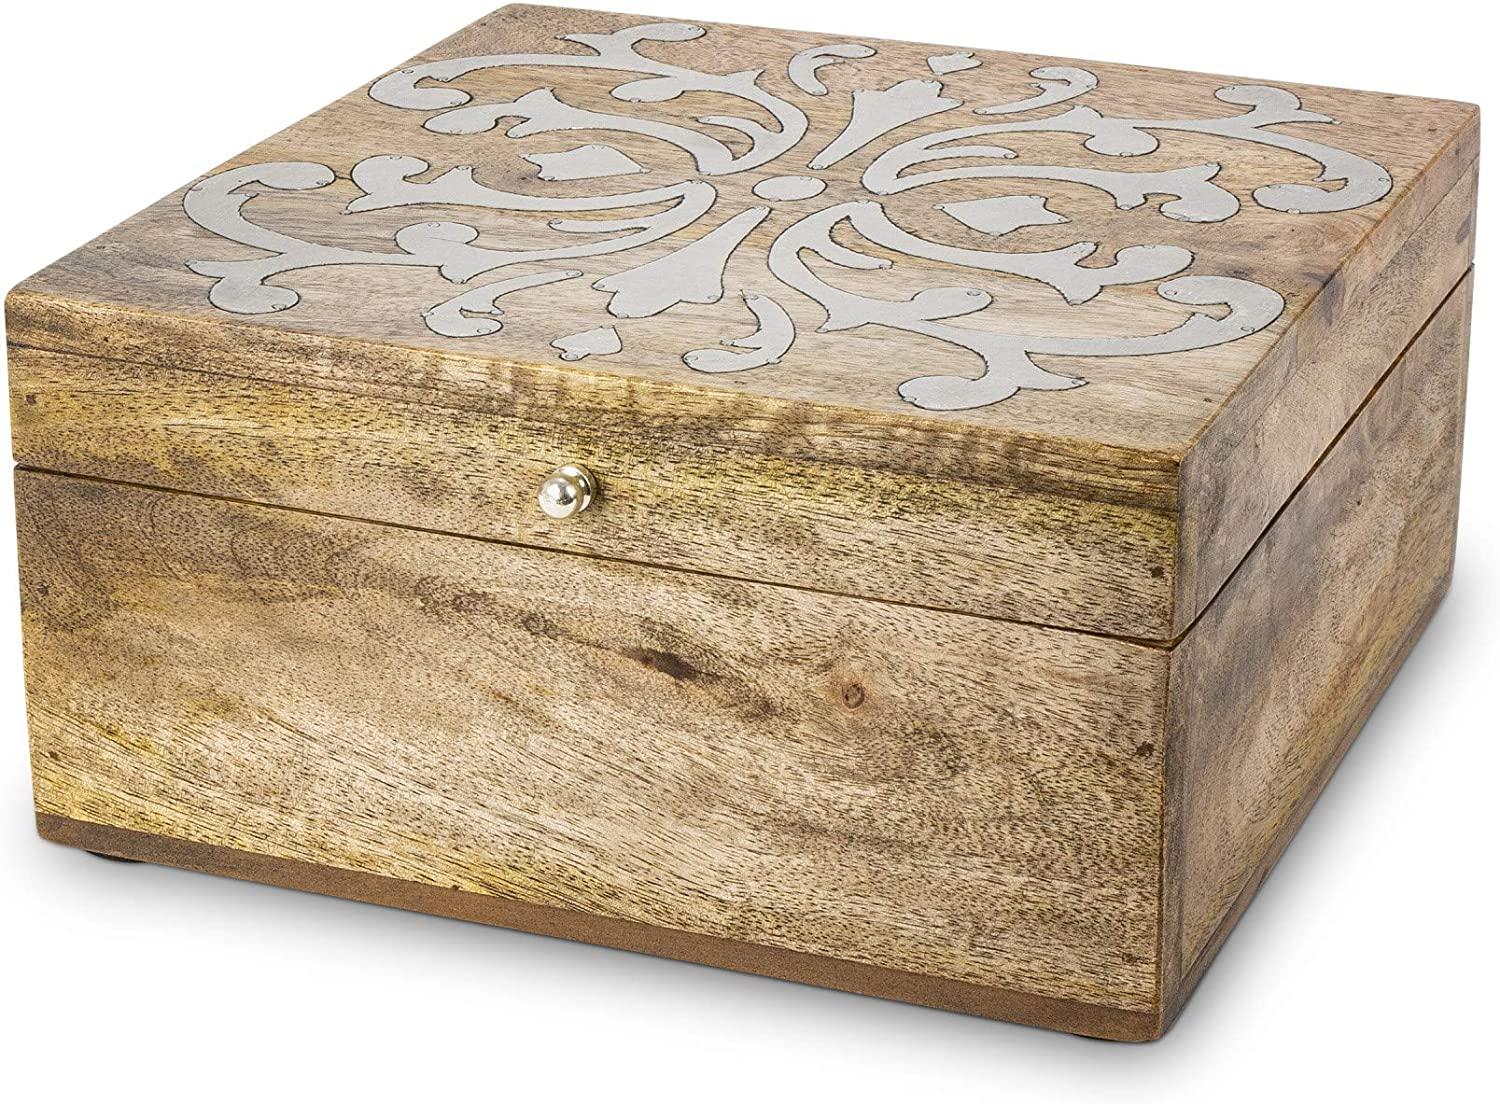 New life GG Wood Inlay Hinged Lidded Box 10InW Decor x Home 5InH 10InL Recommendation